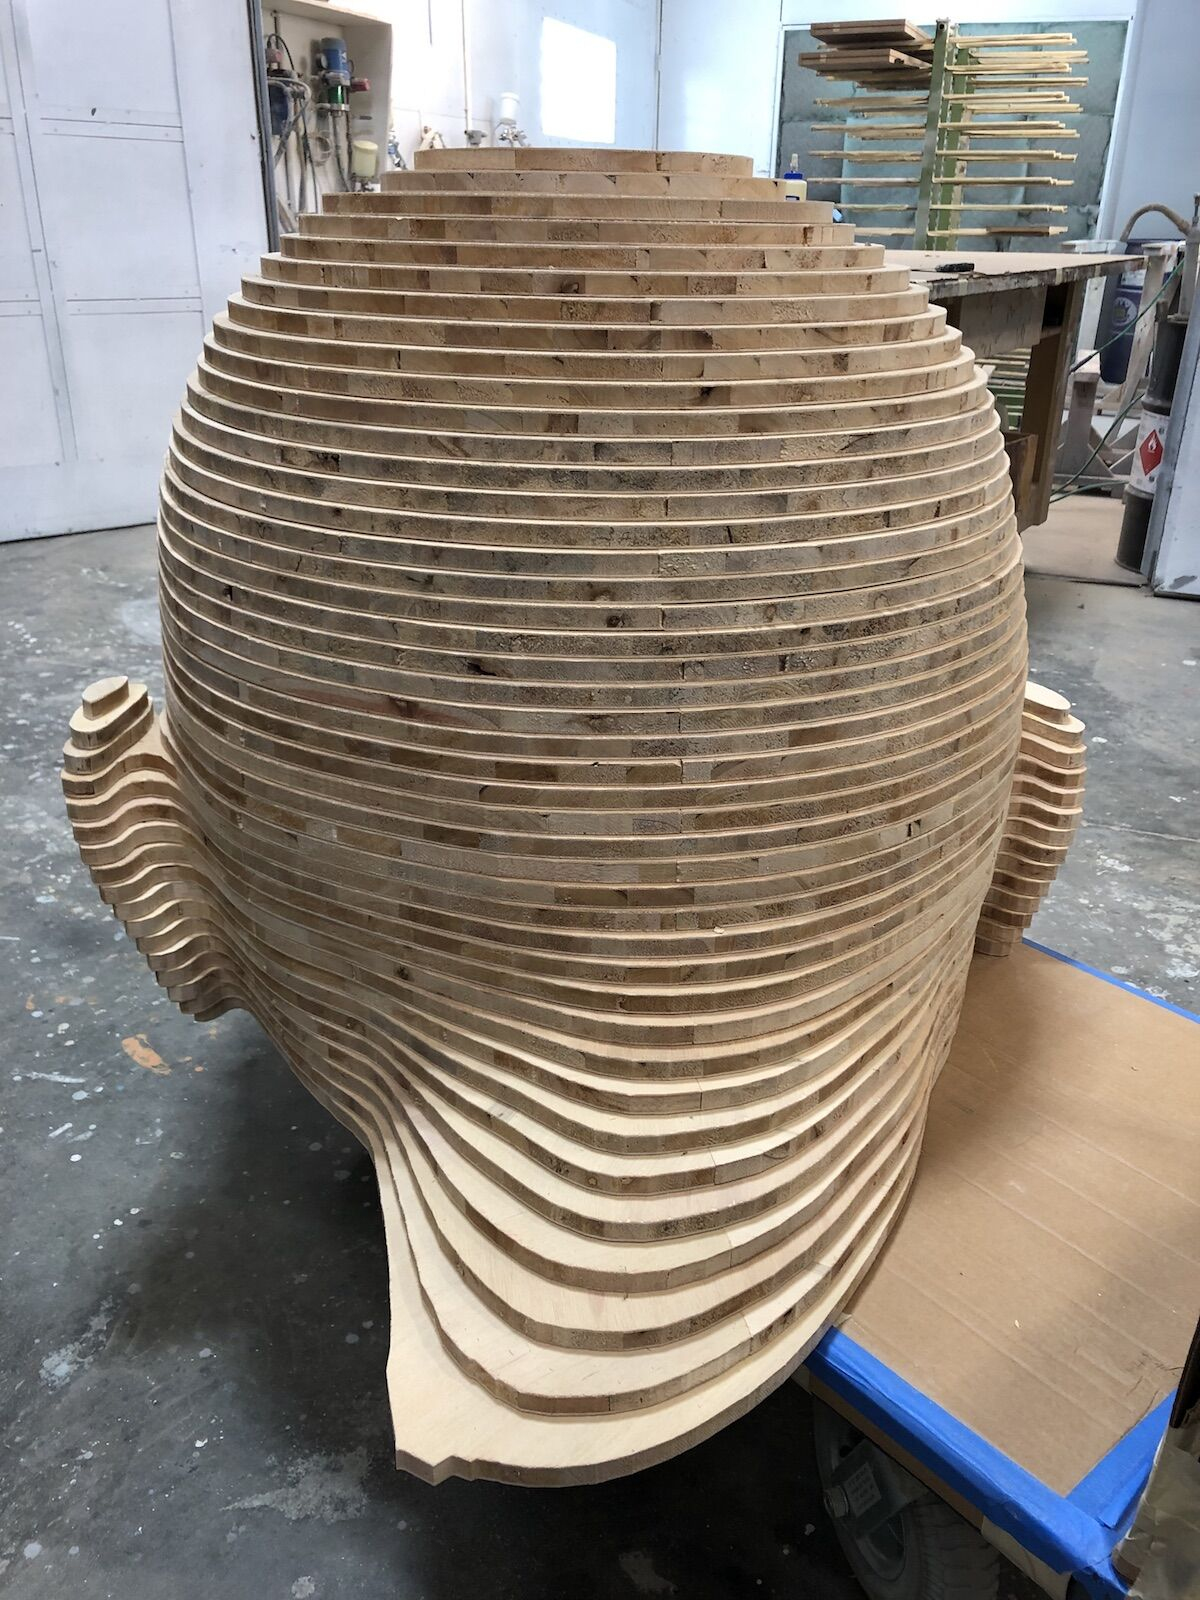 In-progress view of Mariposita,  2019. Courtesy of Chris Carnabuci.